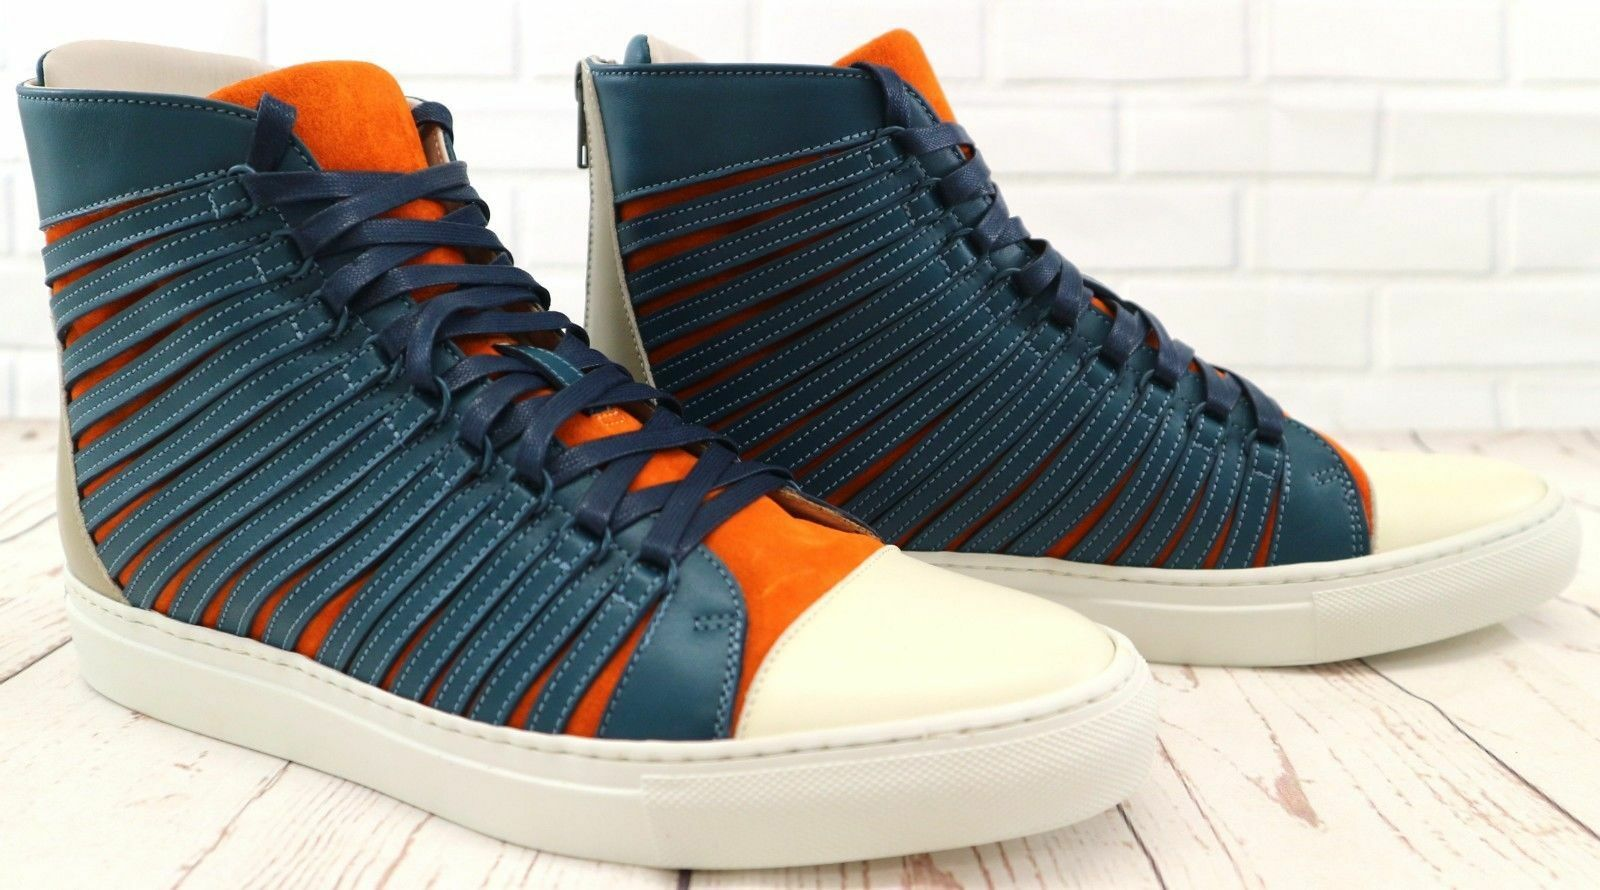 Cipher Radial Marine bluee orange Men's Leather High Top Trainers Sneakers